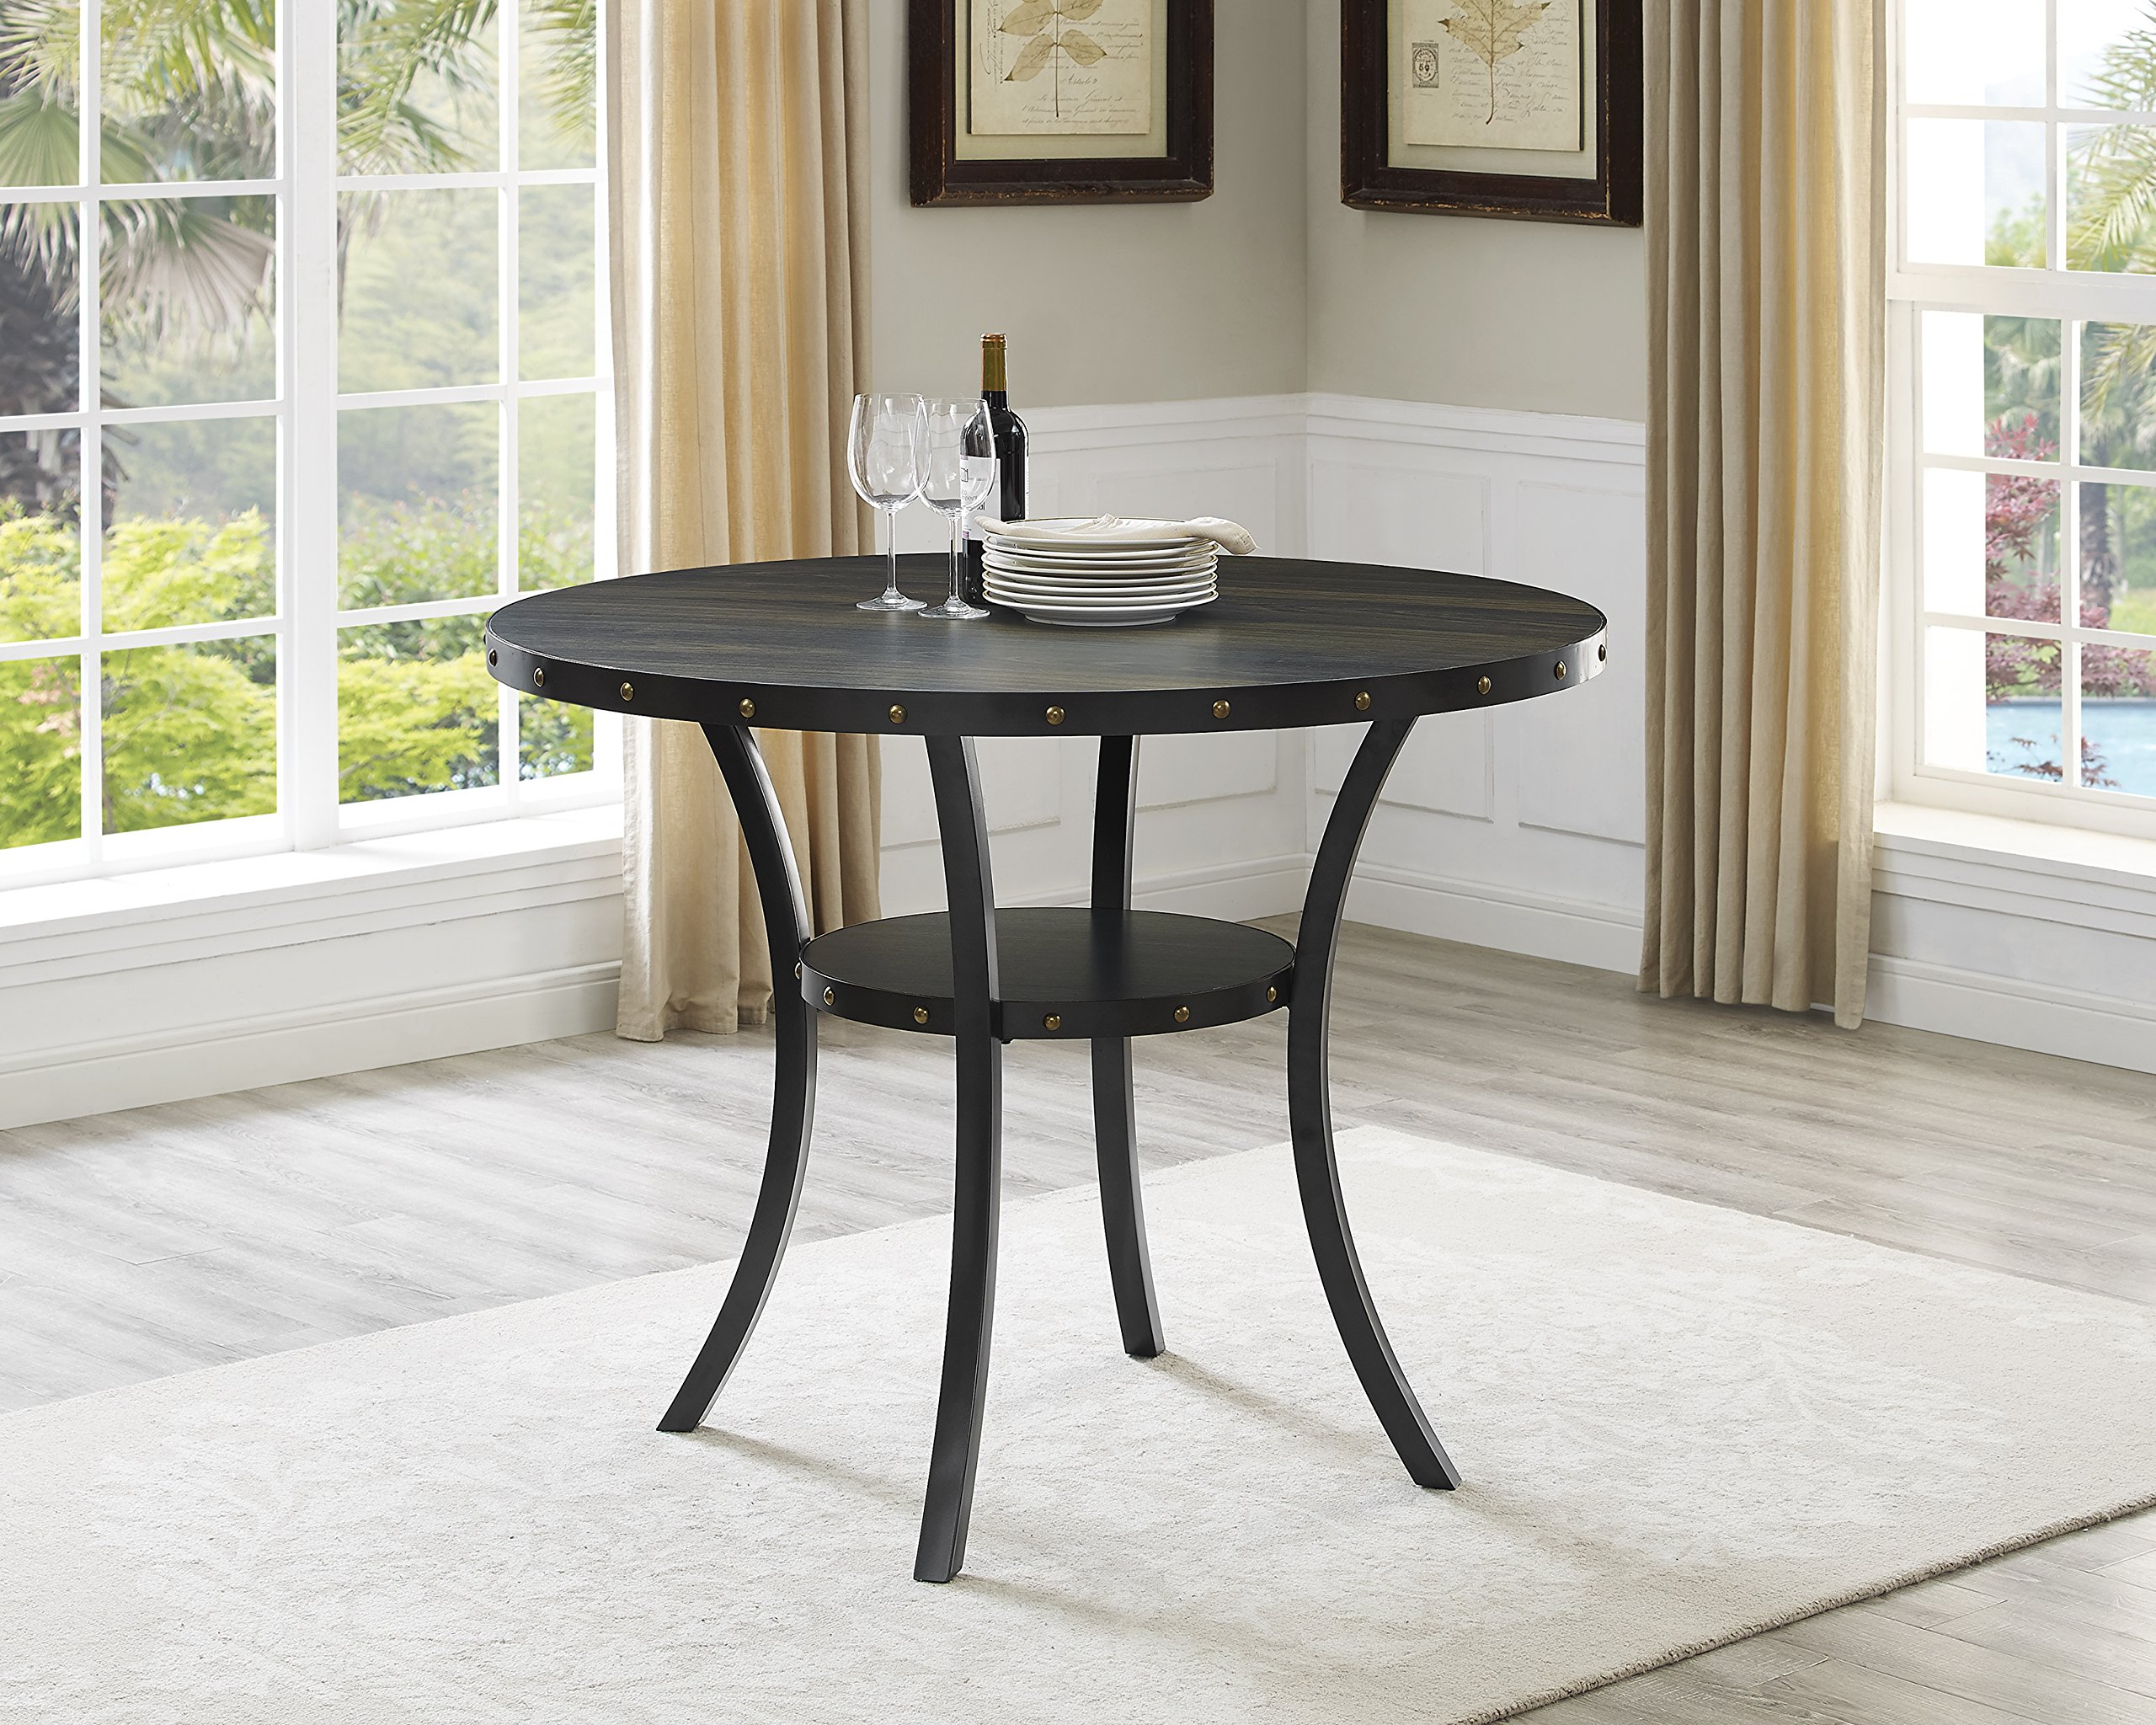 Roundhill Furniture PT162 Biony Dining Collection Counter Height Table, Round Dining Table